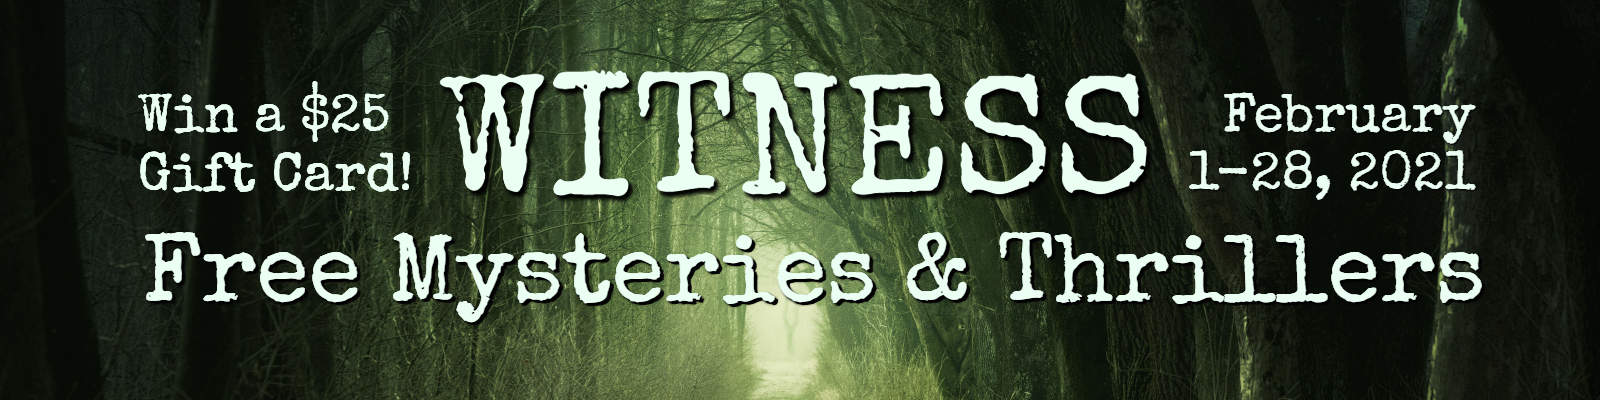 Witness Mysteries and Thrillers